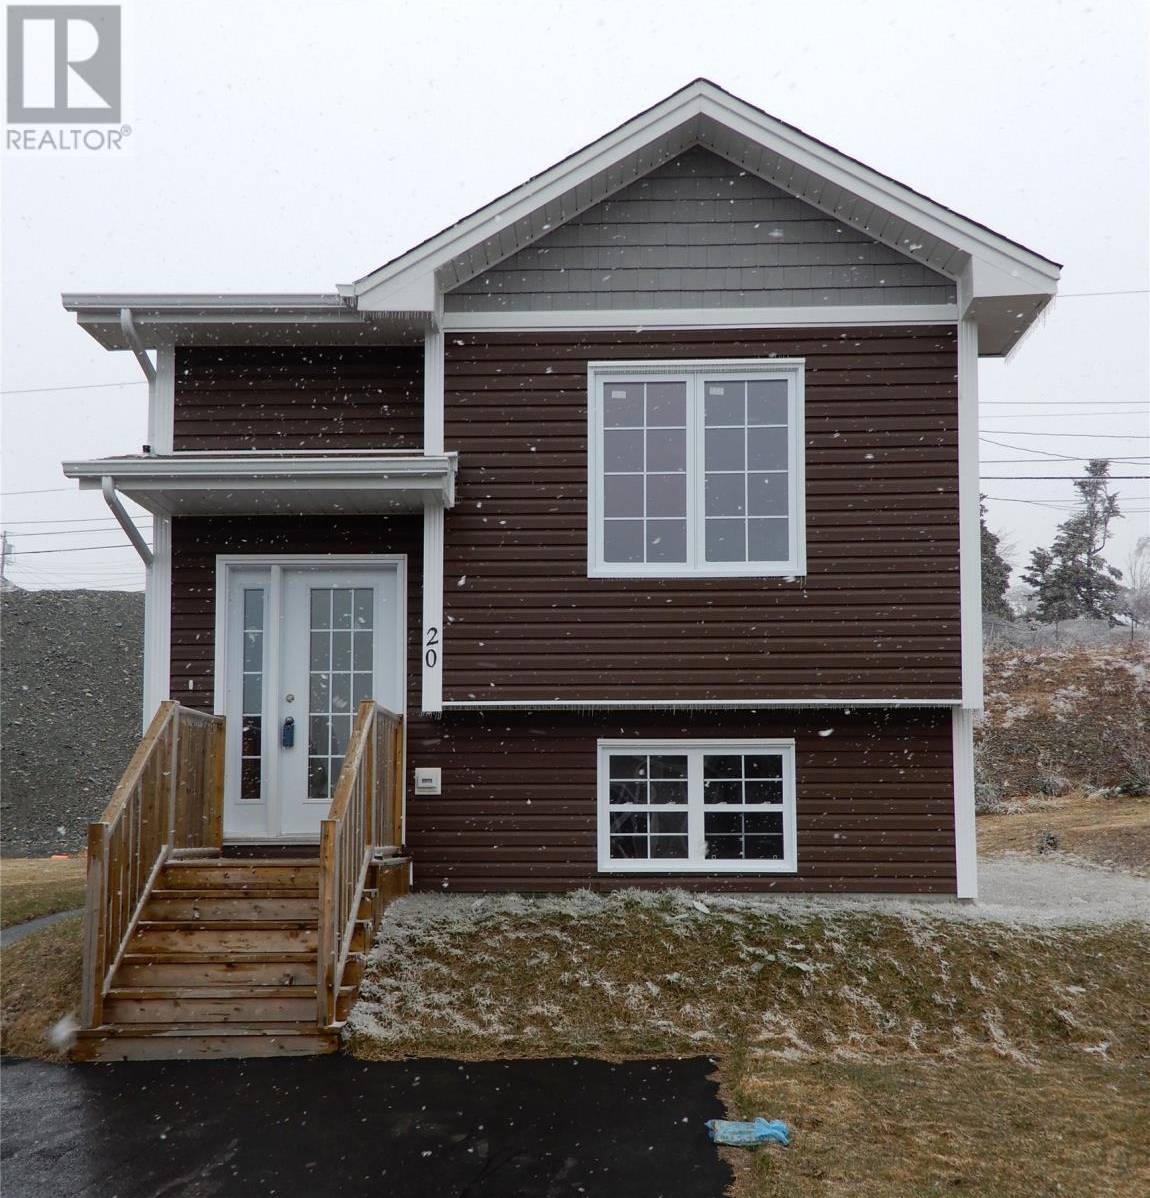 House for sale at 20 Rotary Dr St. John's Newfoundland - MLS: 1207418